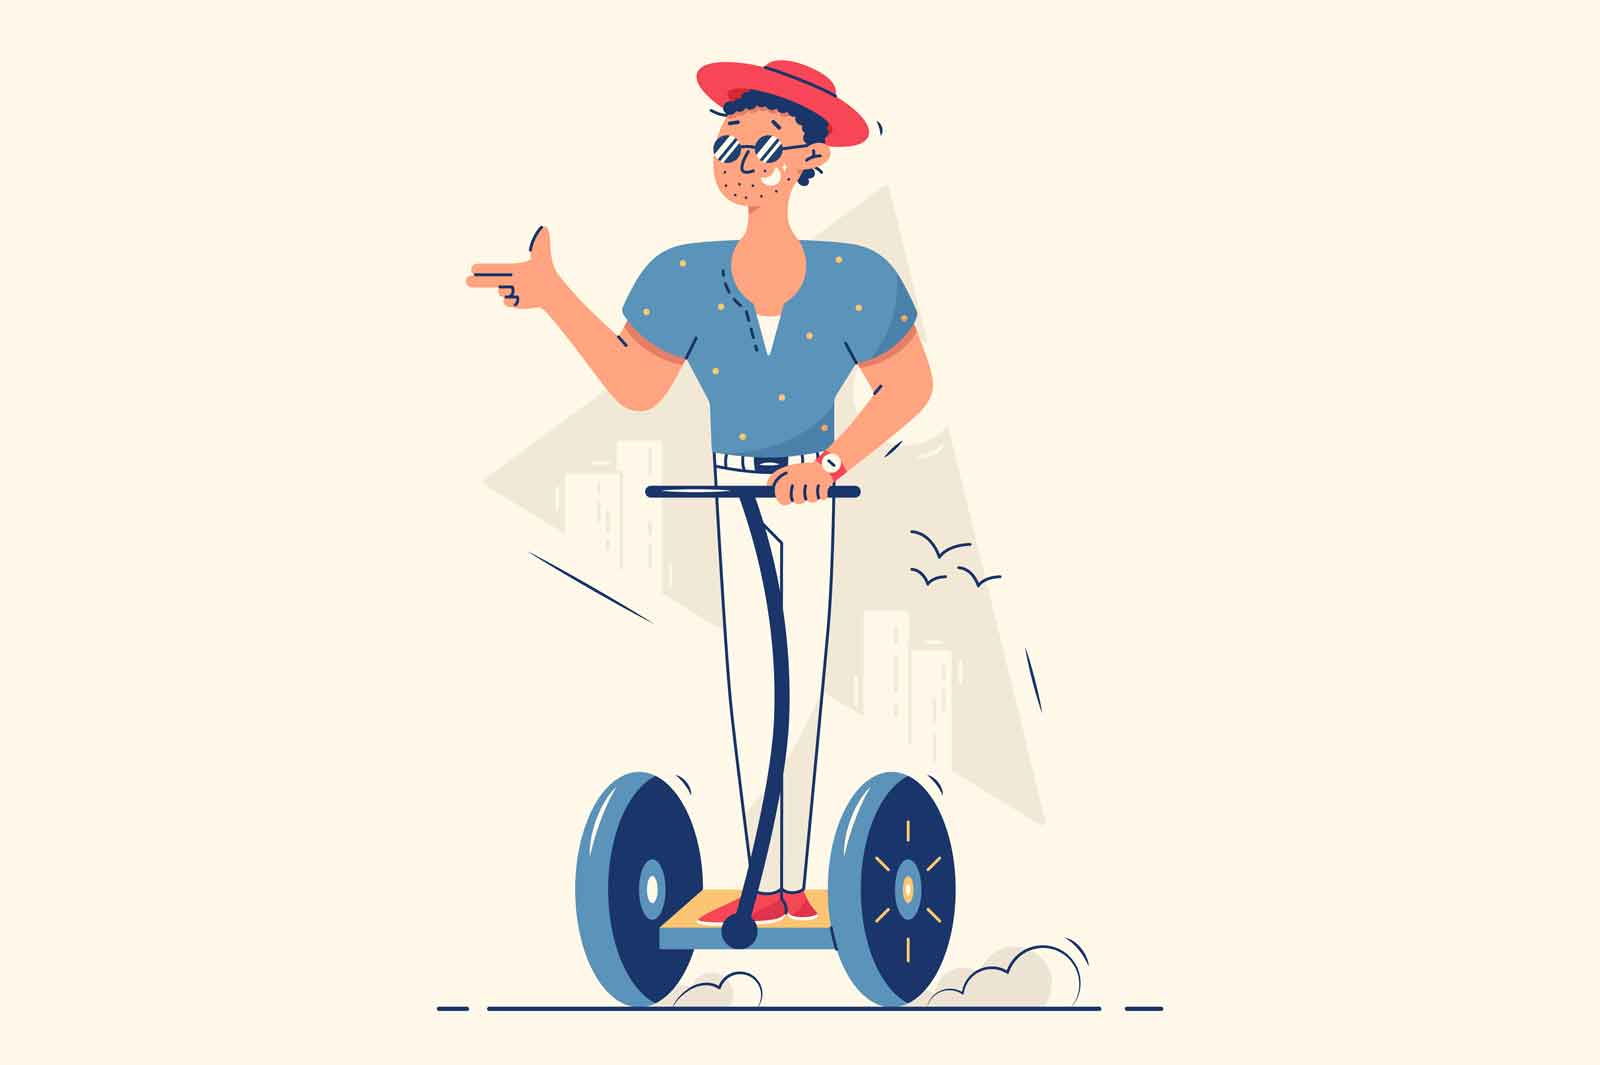 Happy guy riding electric scooter on street vector illustration. Fun spare time flat style. Summer active sports using electronic vehicles and touristic entertainment concept. Isolated on beige background